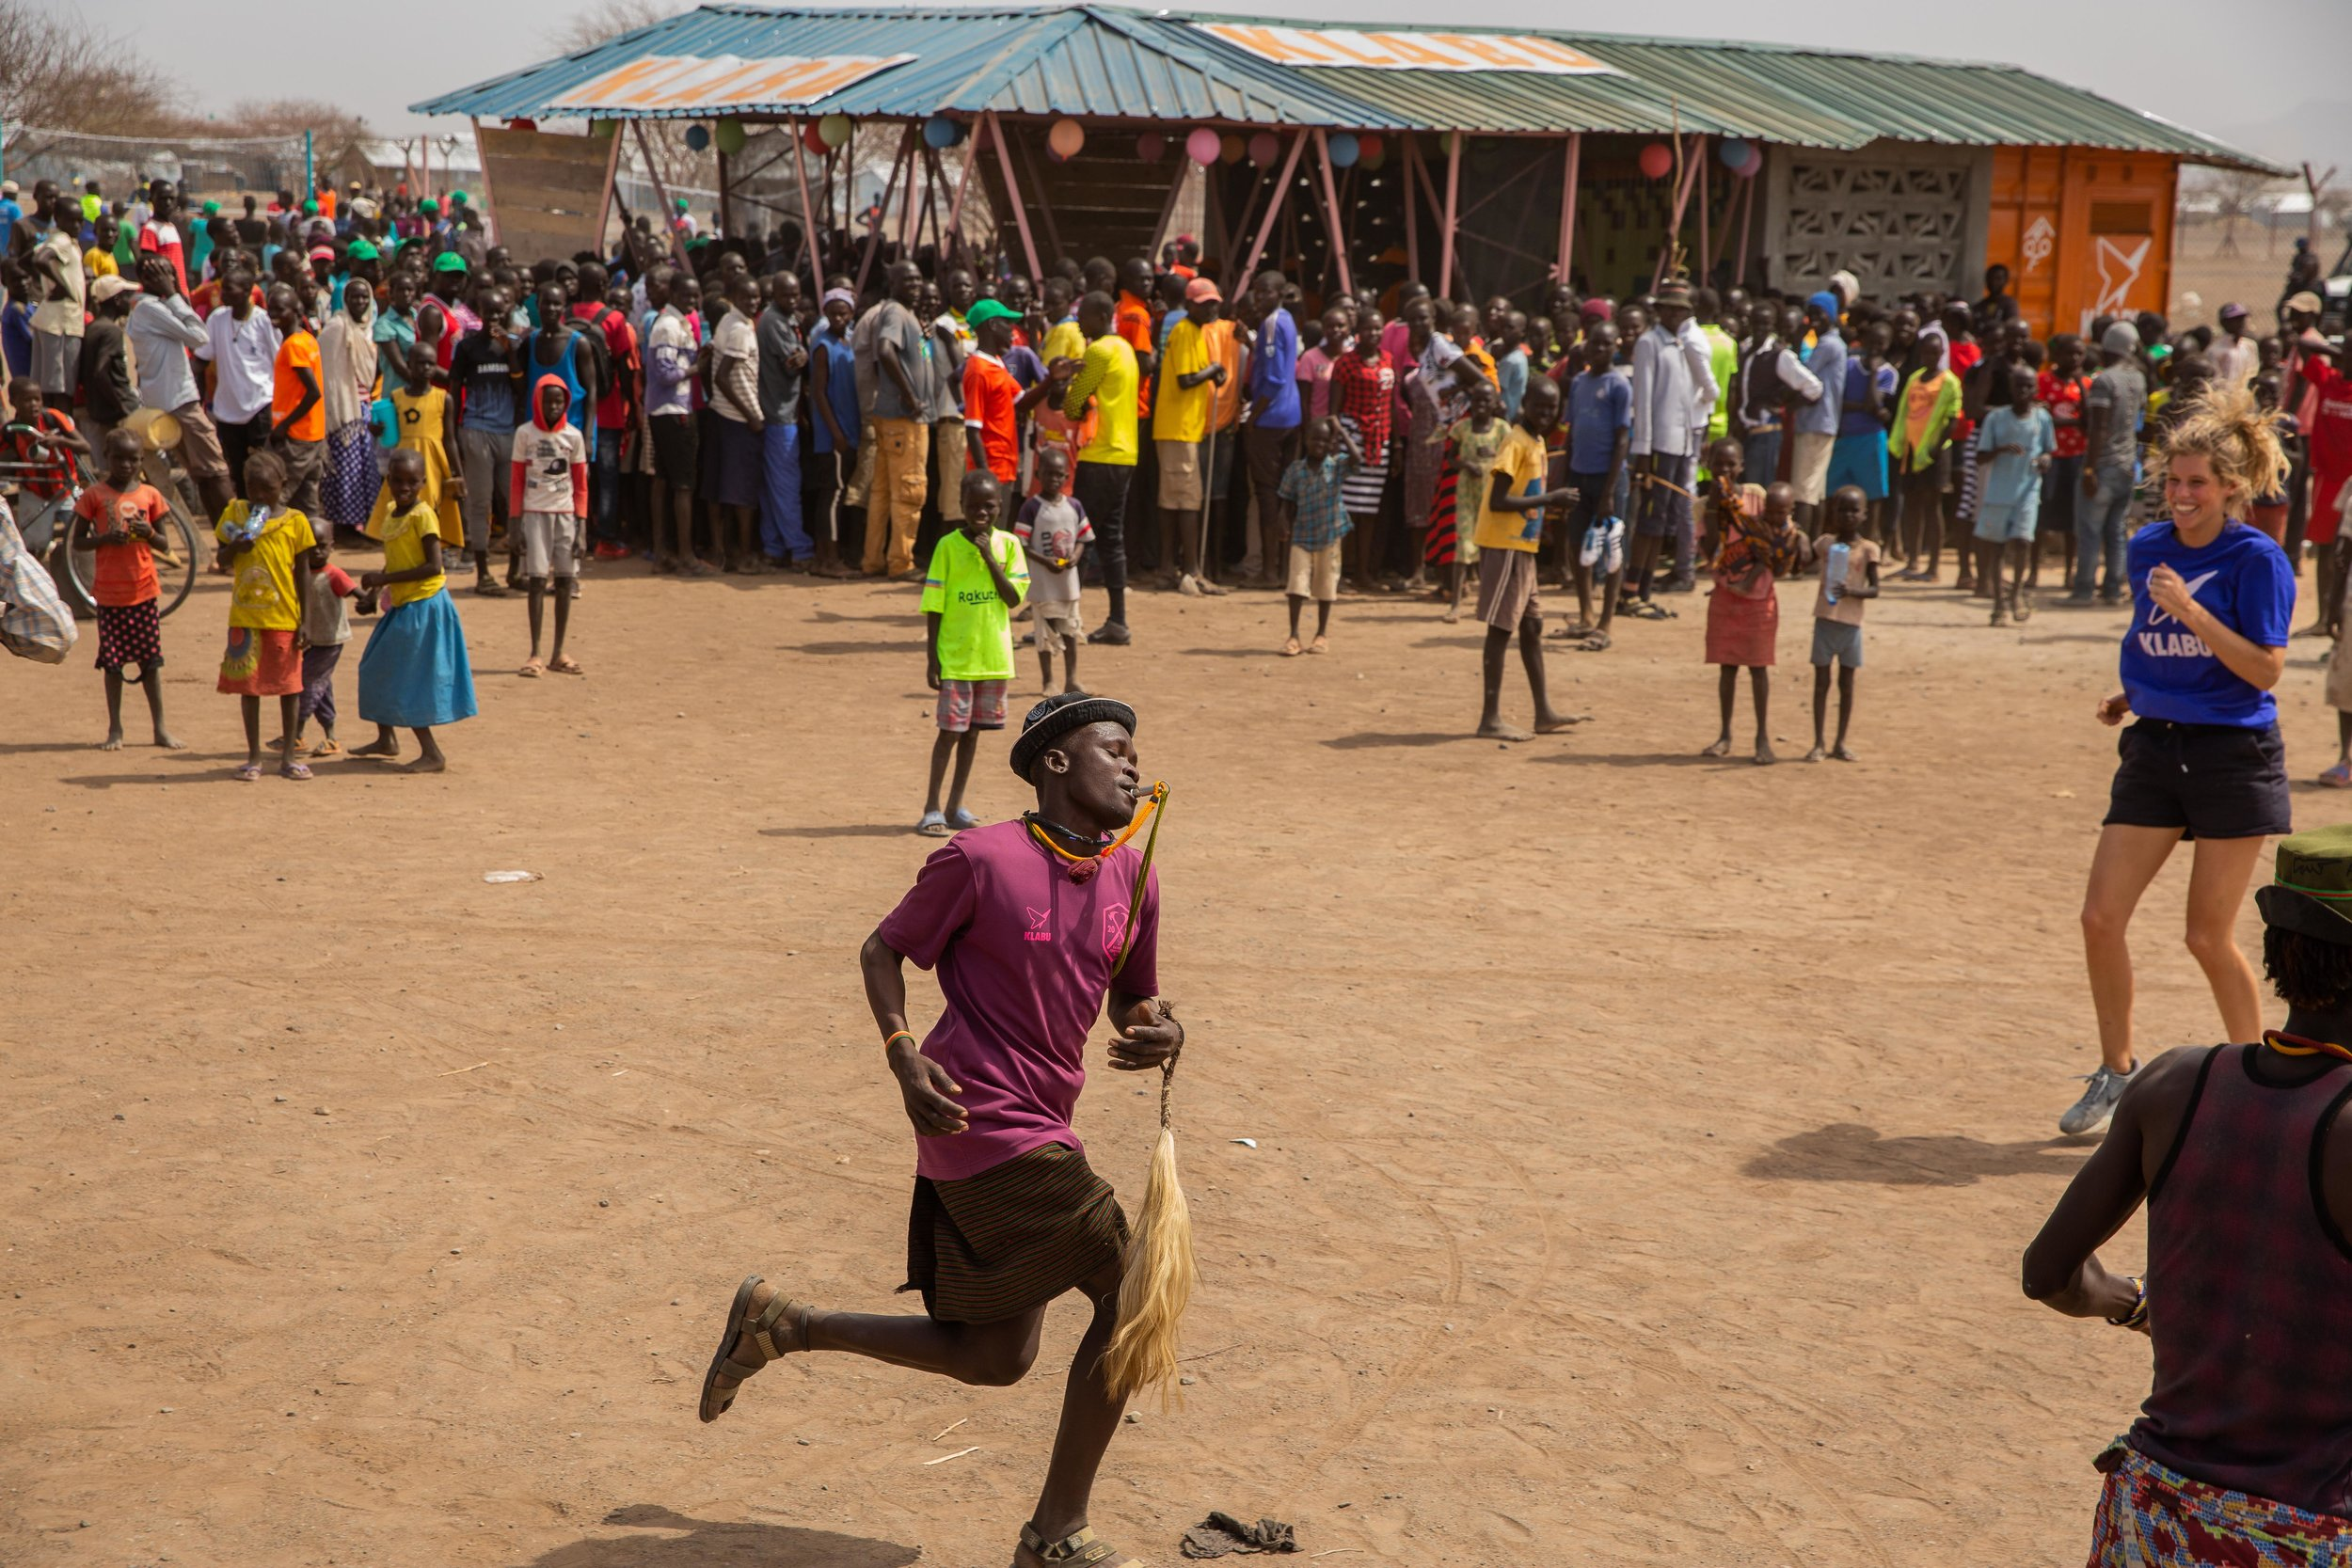 Dancing and singing, people having fun at the opening celebration